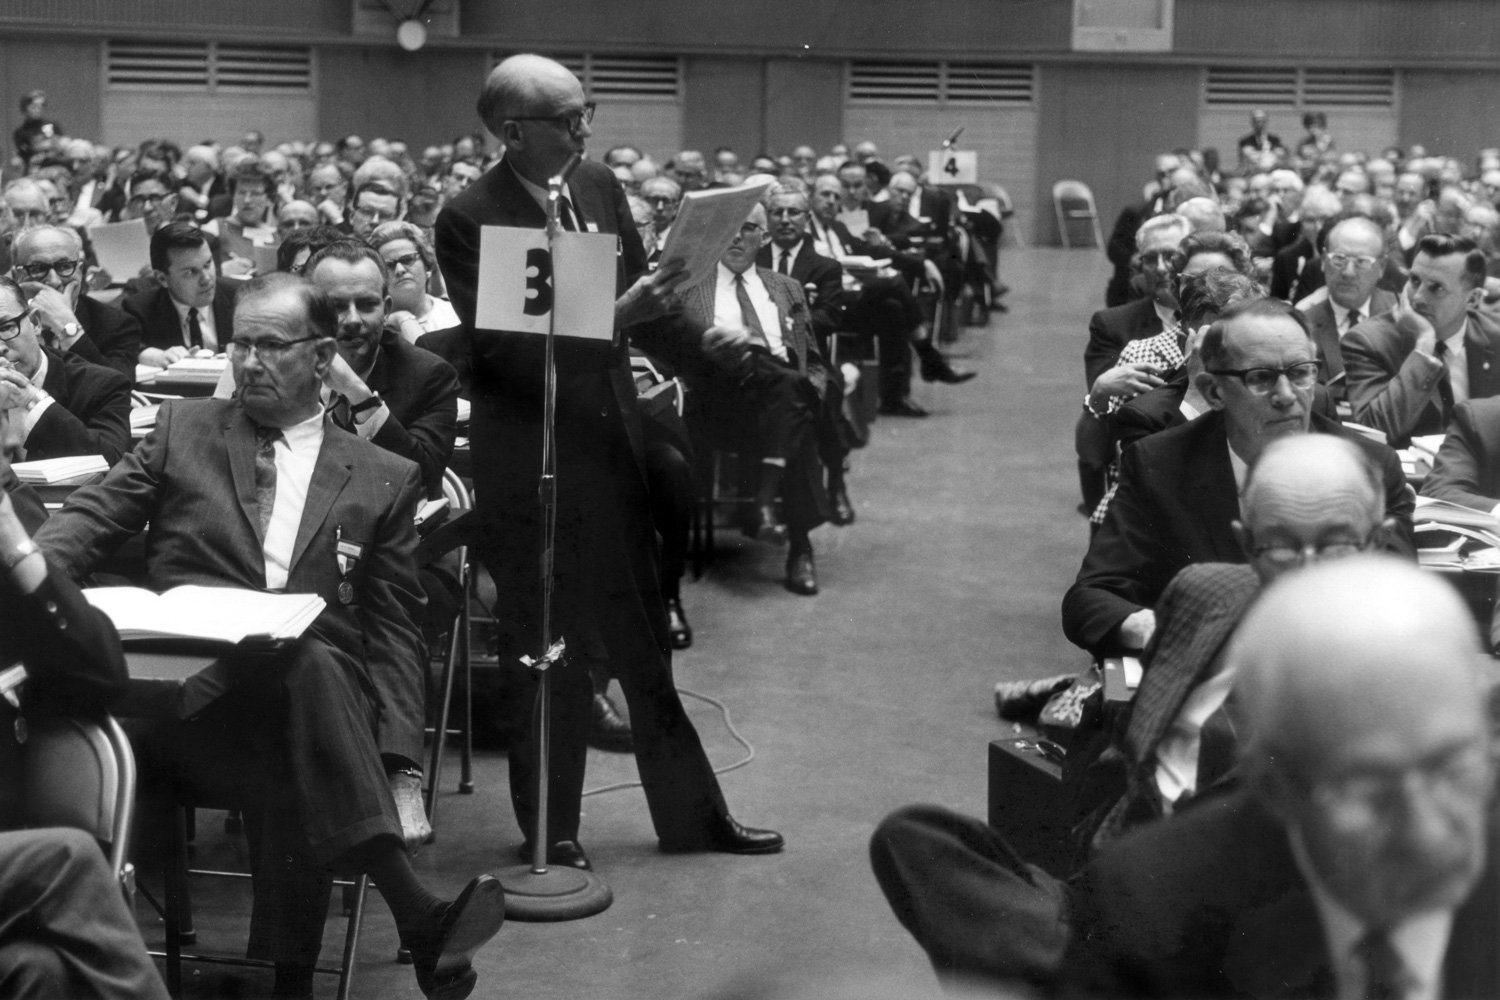 There has only been one other special session of General Conference in the history of The United Methodist Church.